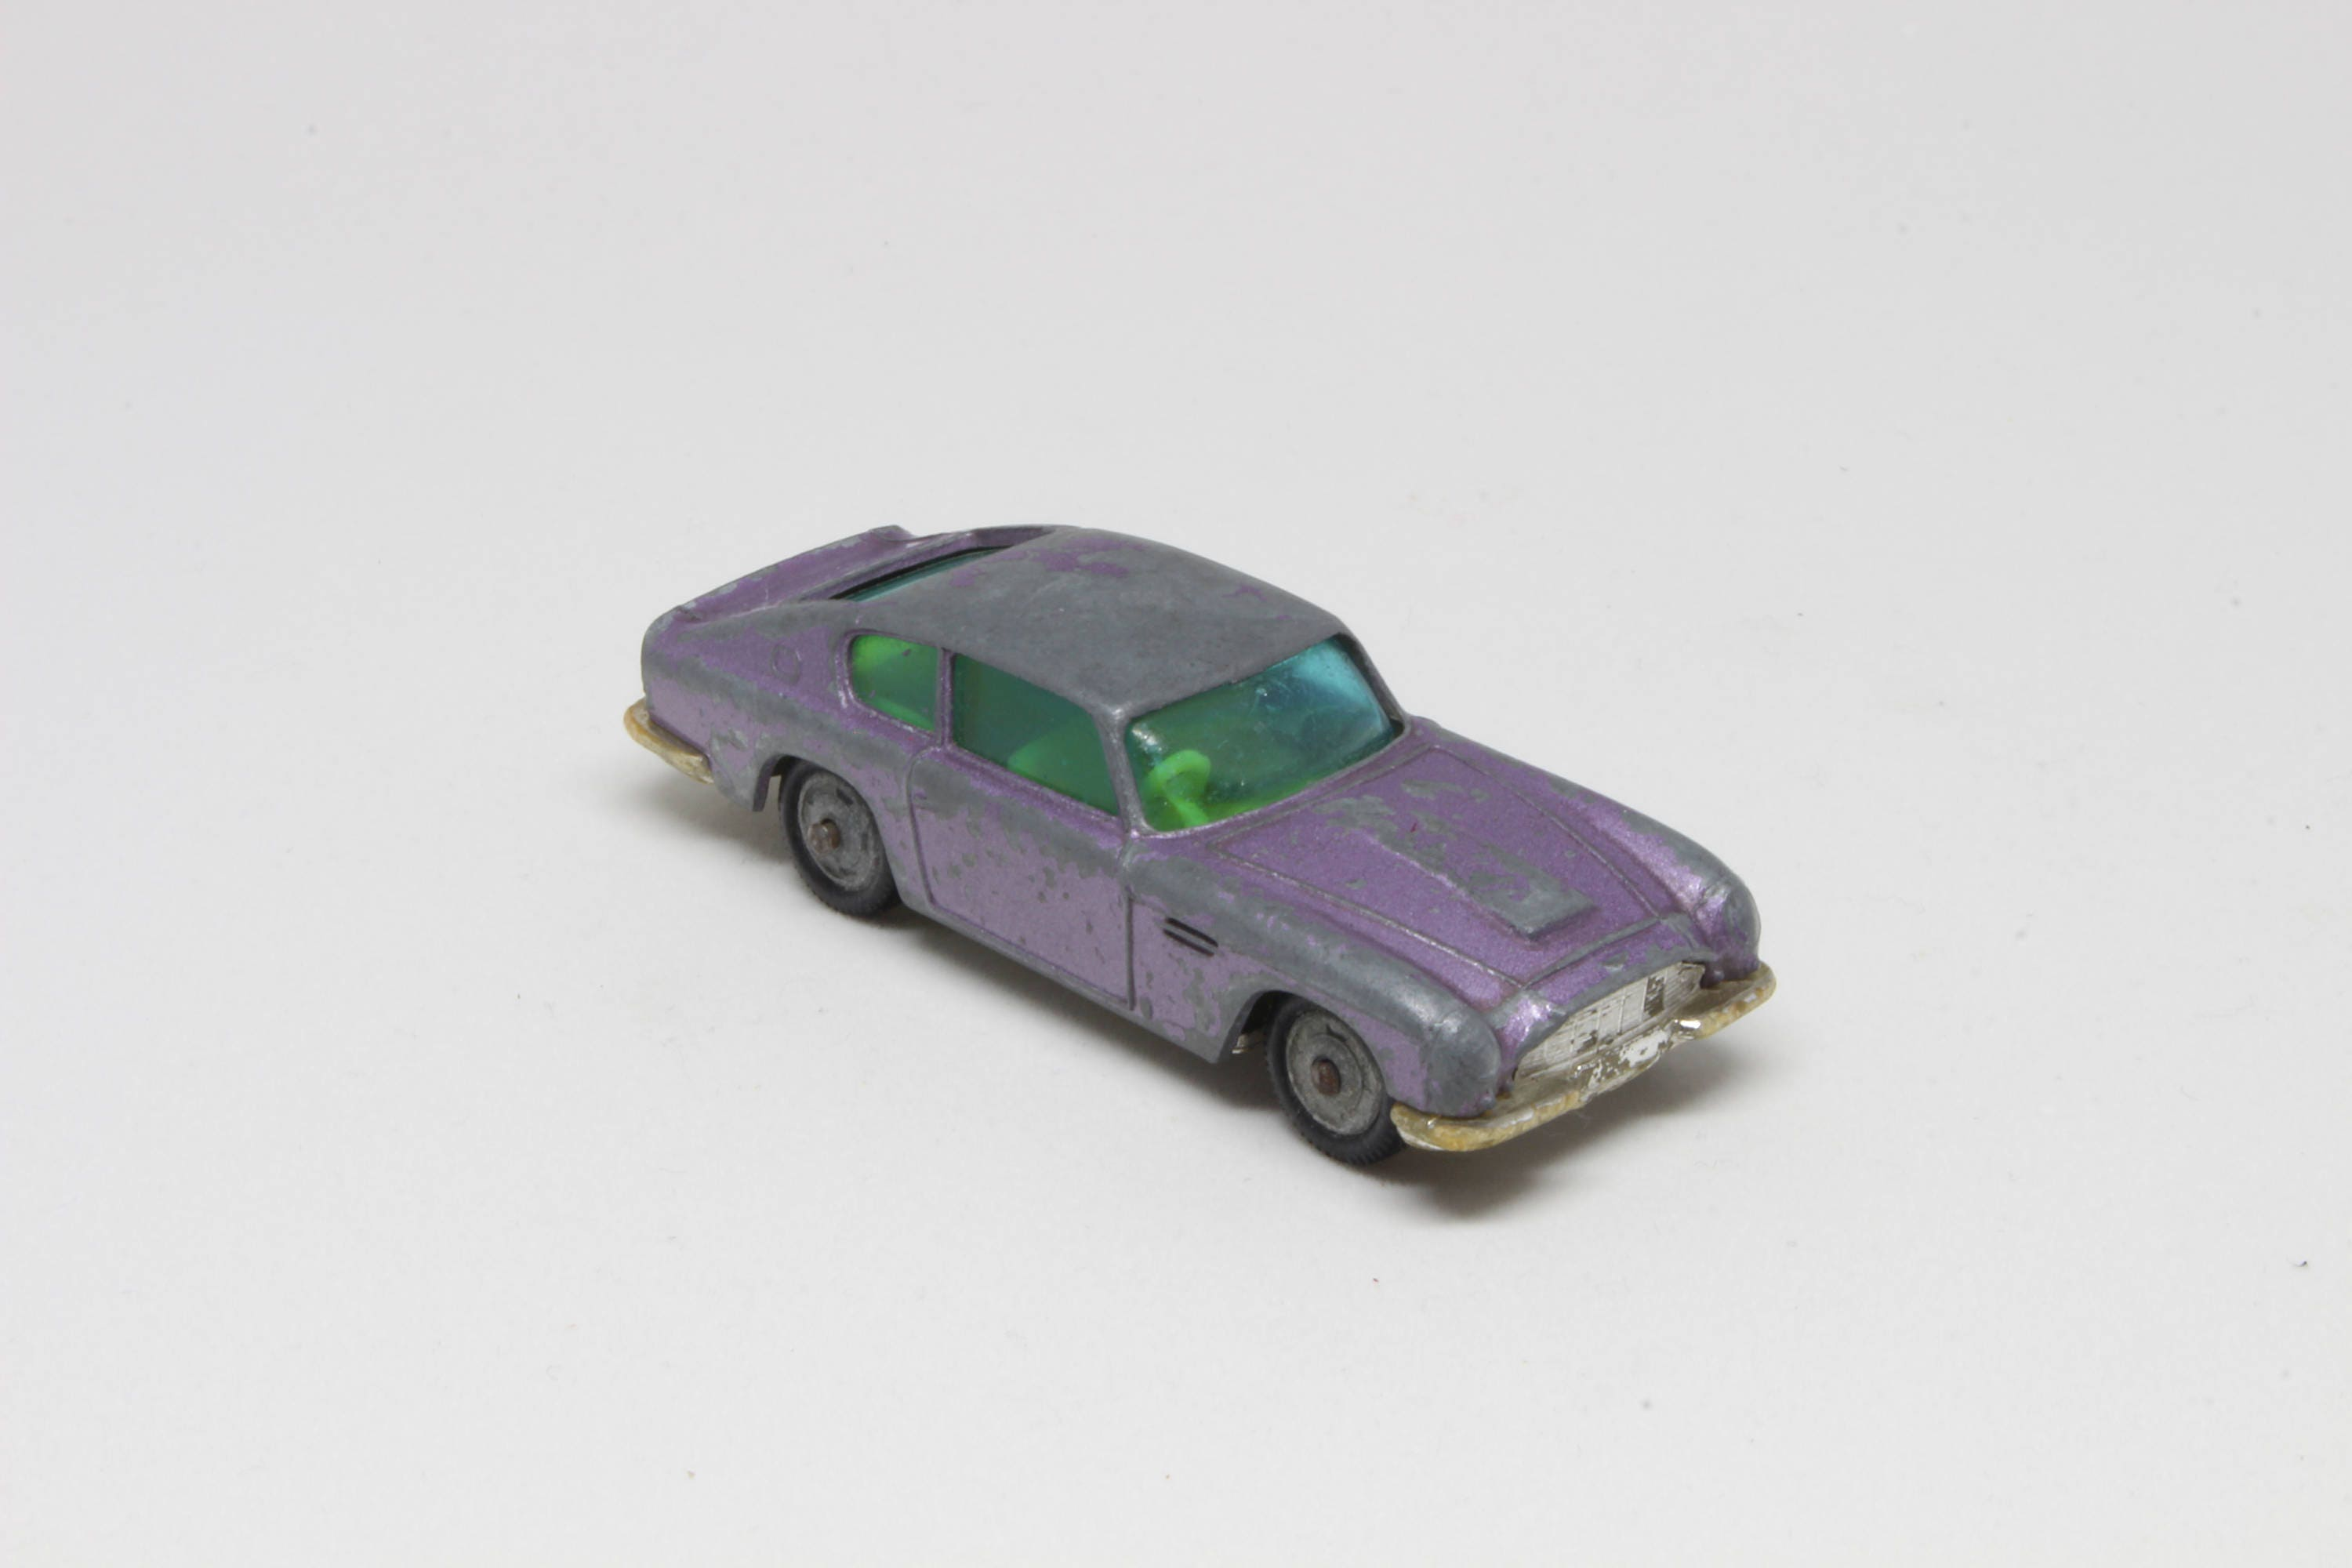 Vintage Husky Models Aston Martin DB6 Toy Car